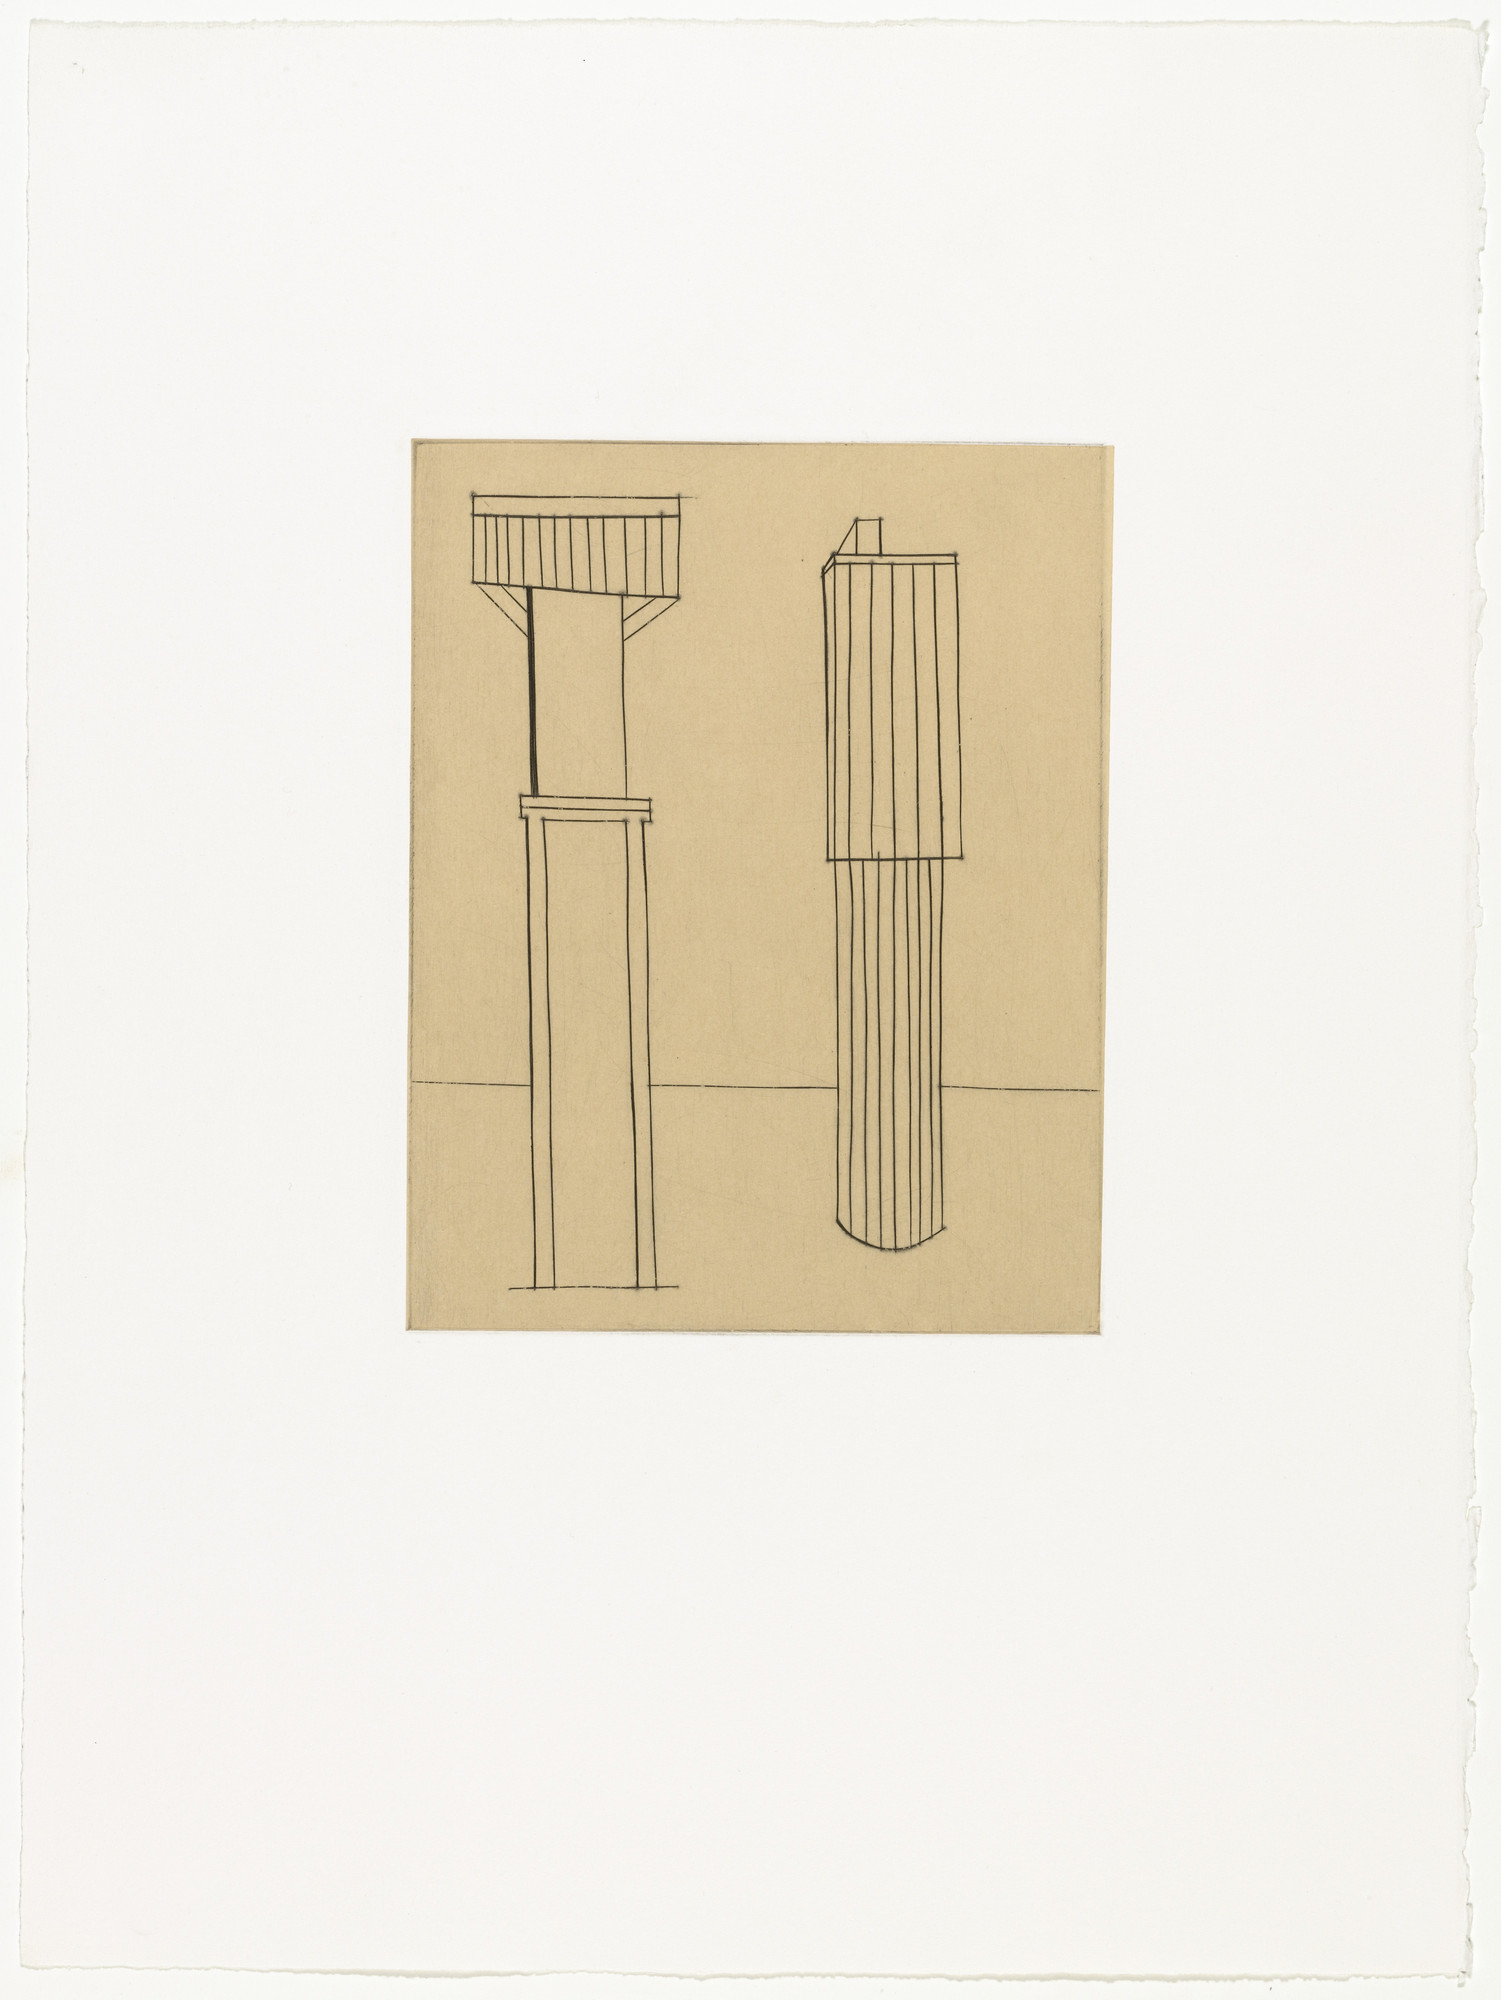 Louise Bourgeois. Plate 2 of 11, from the illustrated book, He Disappeared into Complete Silence, second edition. 1990; reprinted 1993